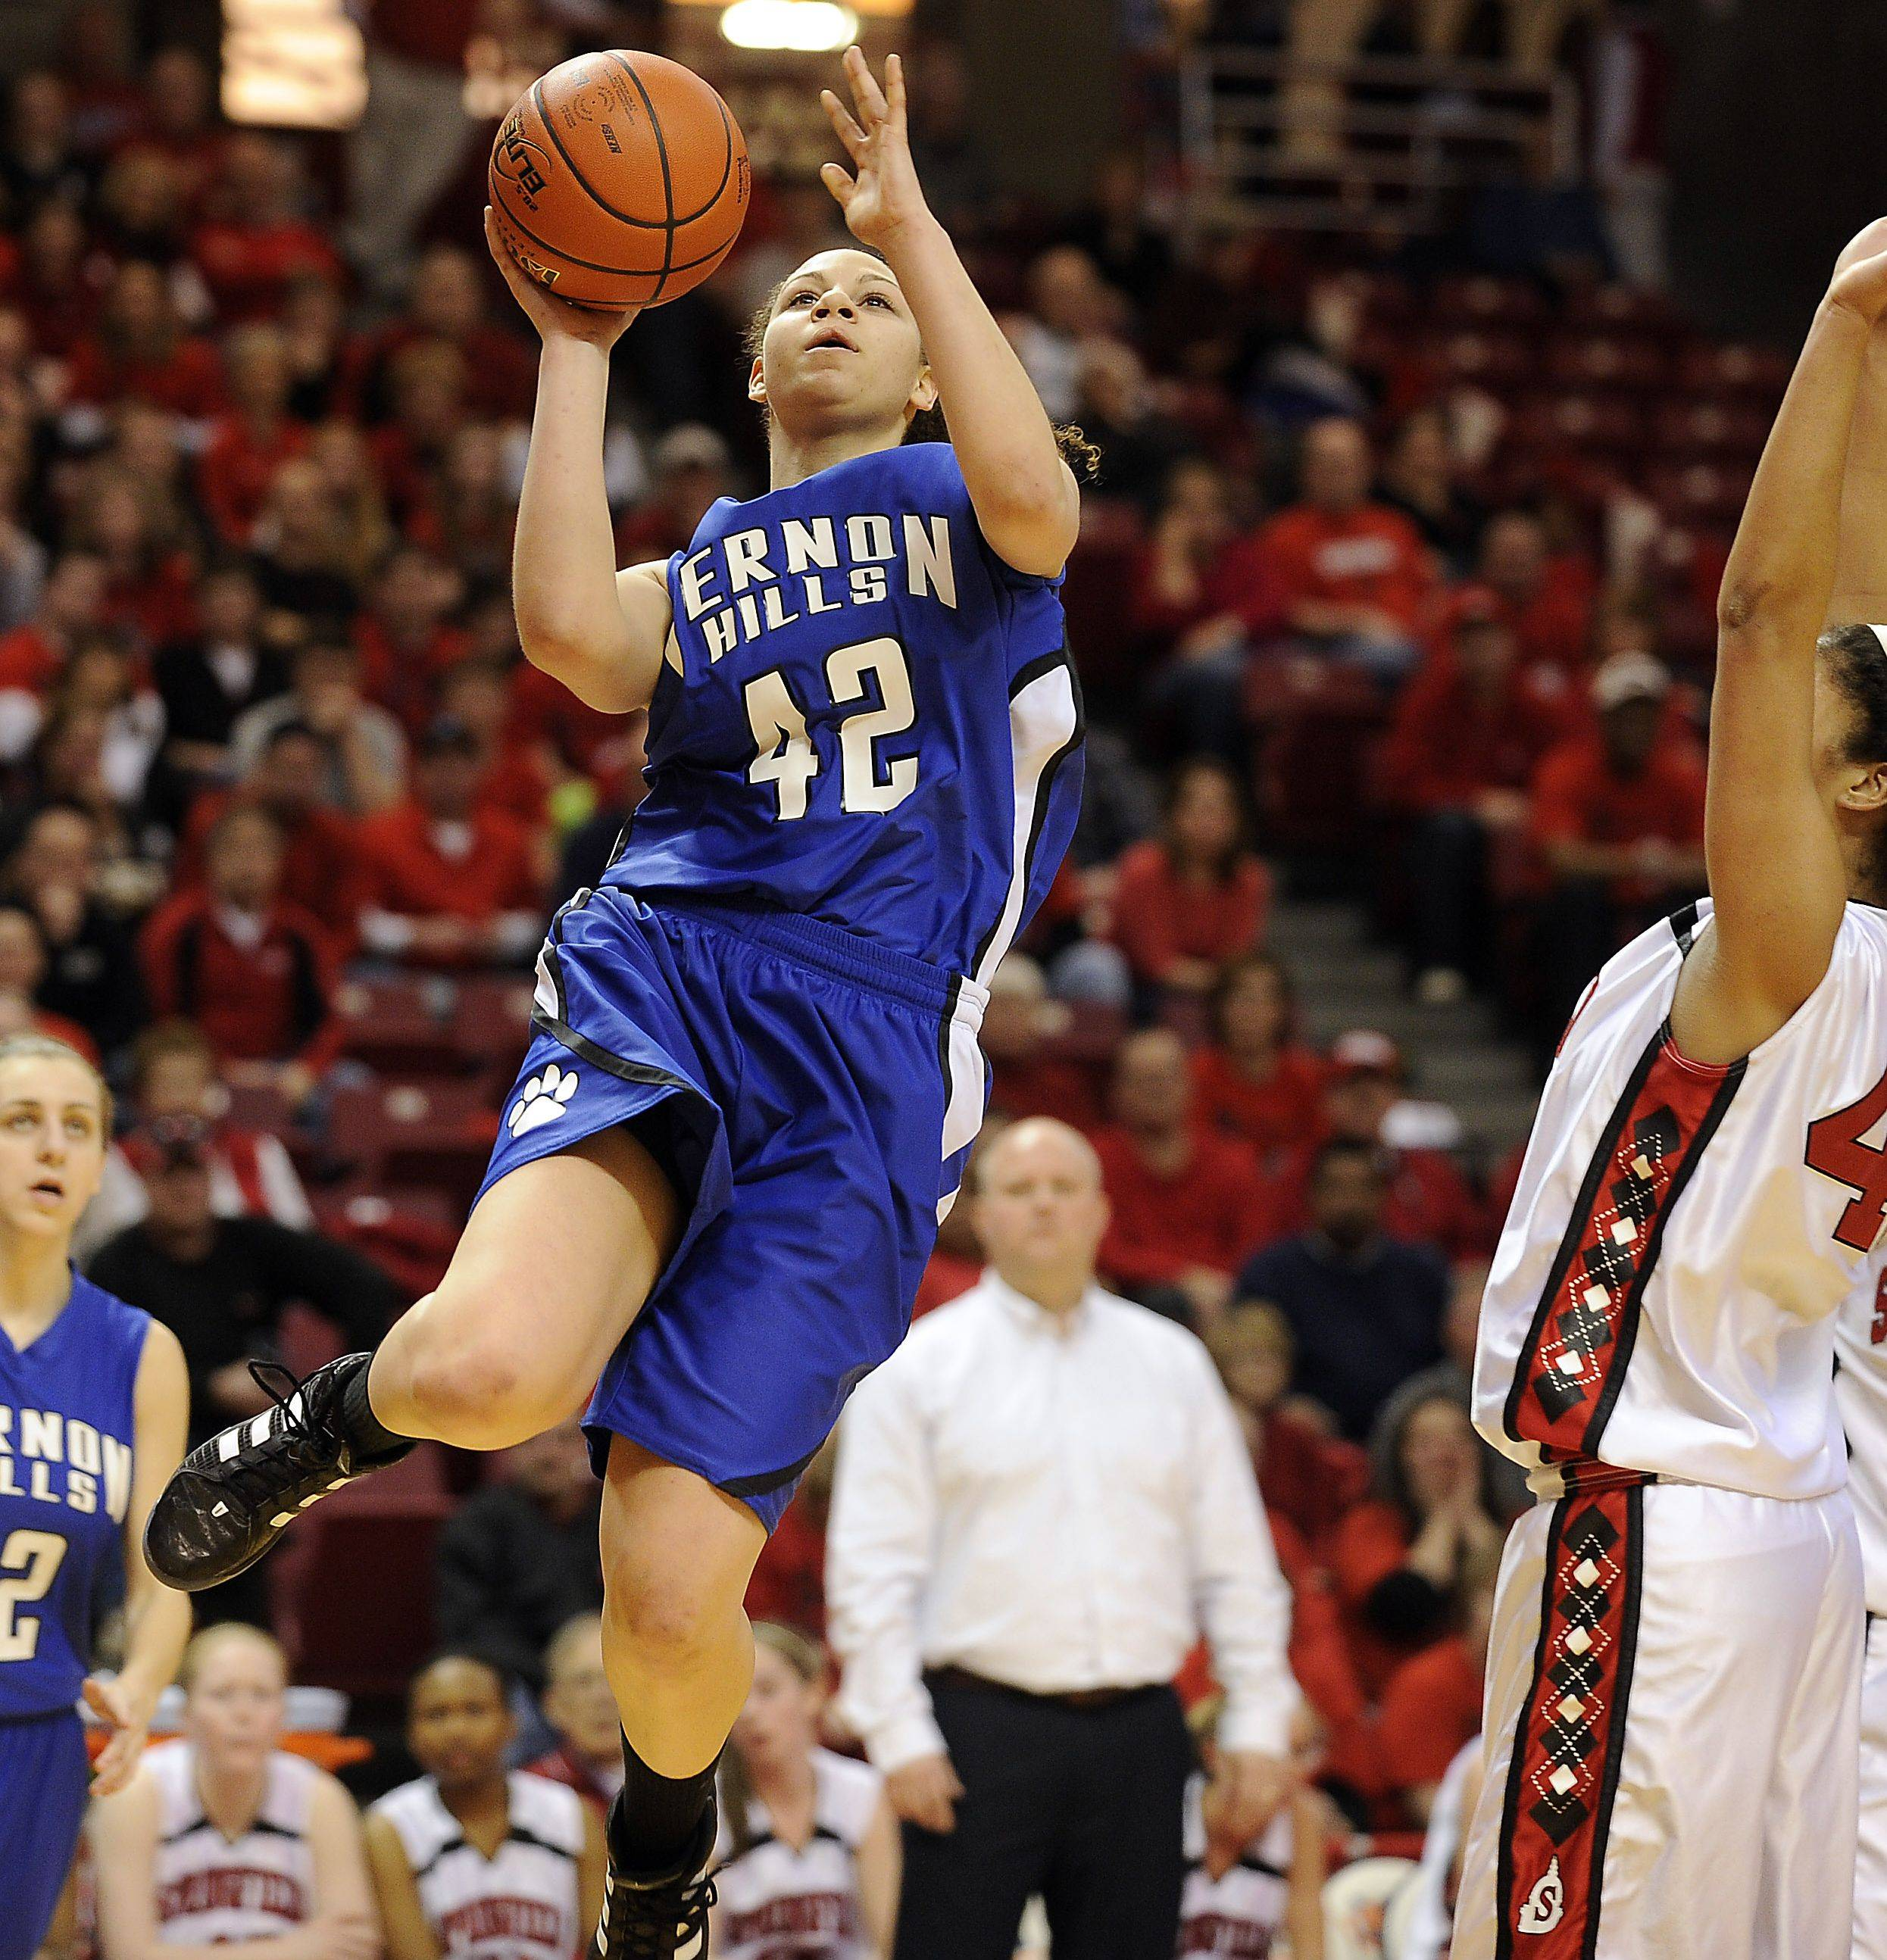 Vernon Hills' Lauren Webb glides to the basket during last year's Class 3A tournament. Webb was key in getting the Cougars back downstate for a second straight time this winter.